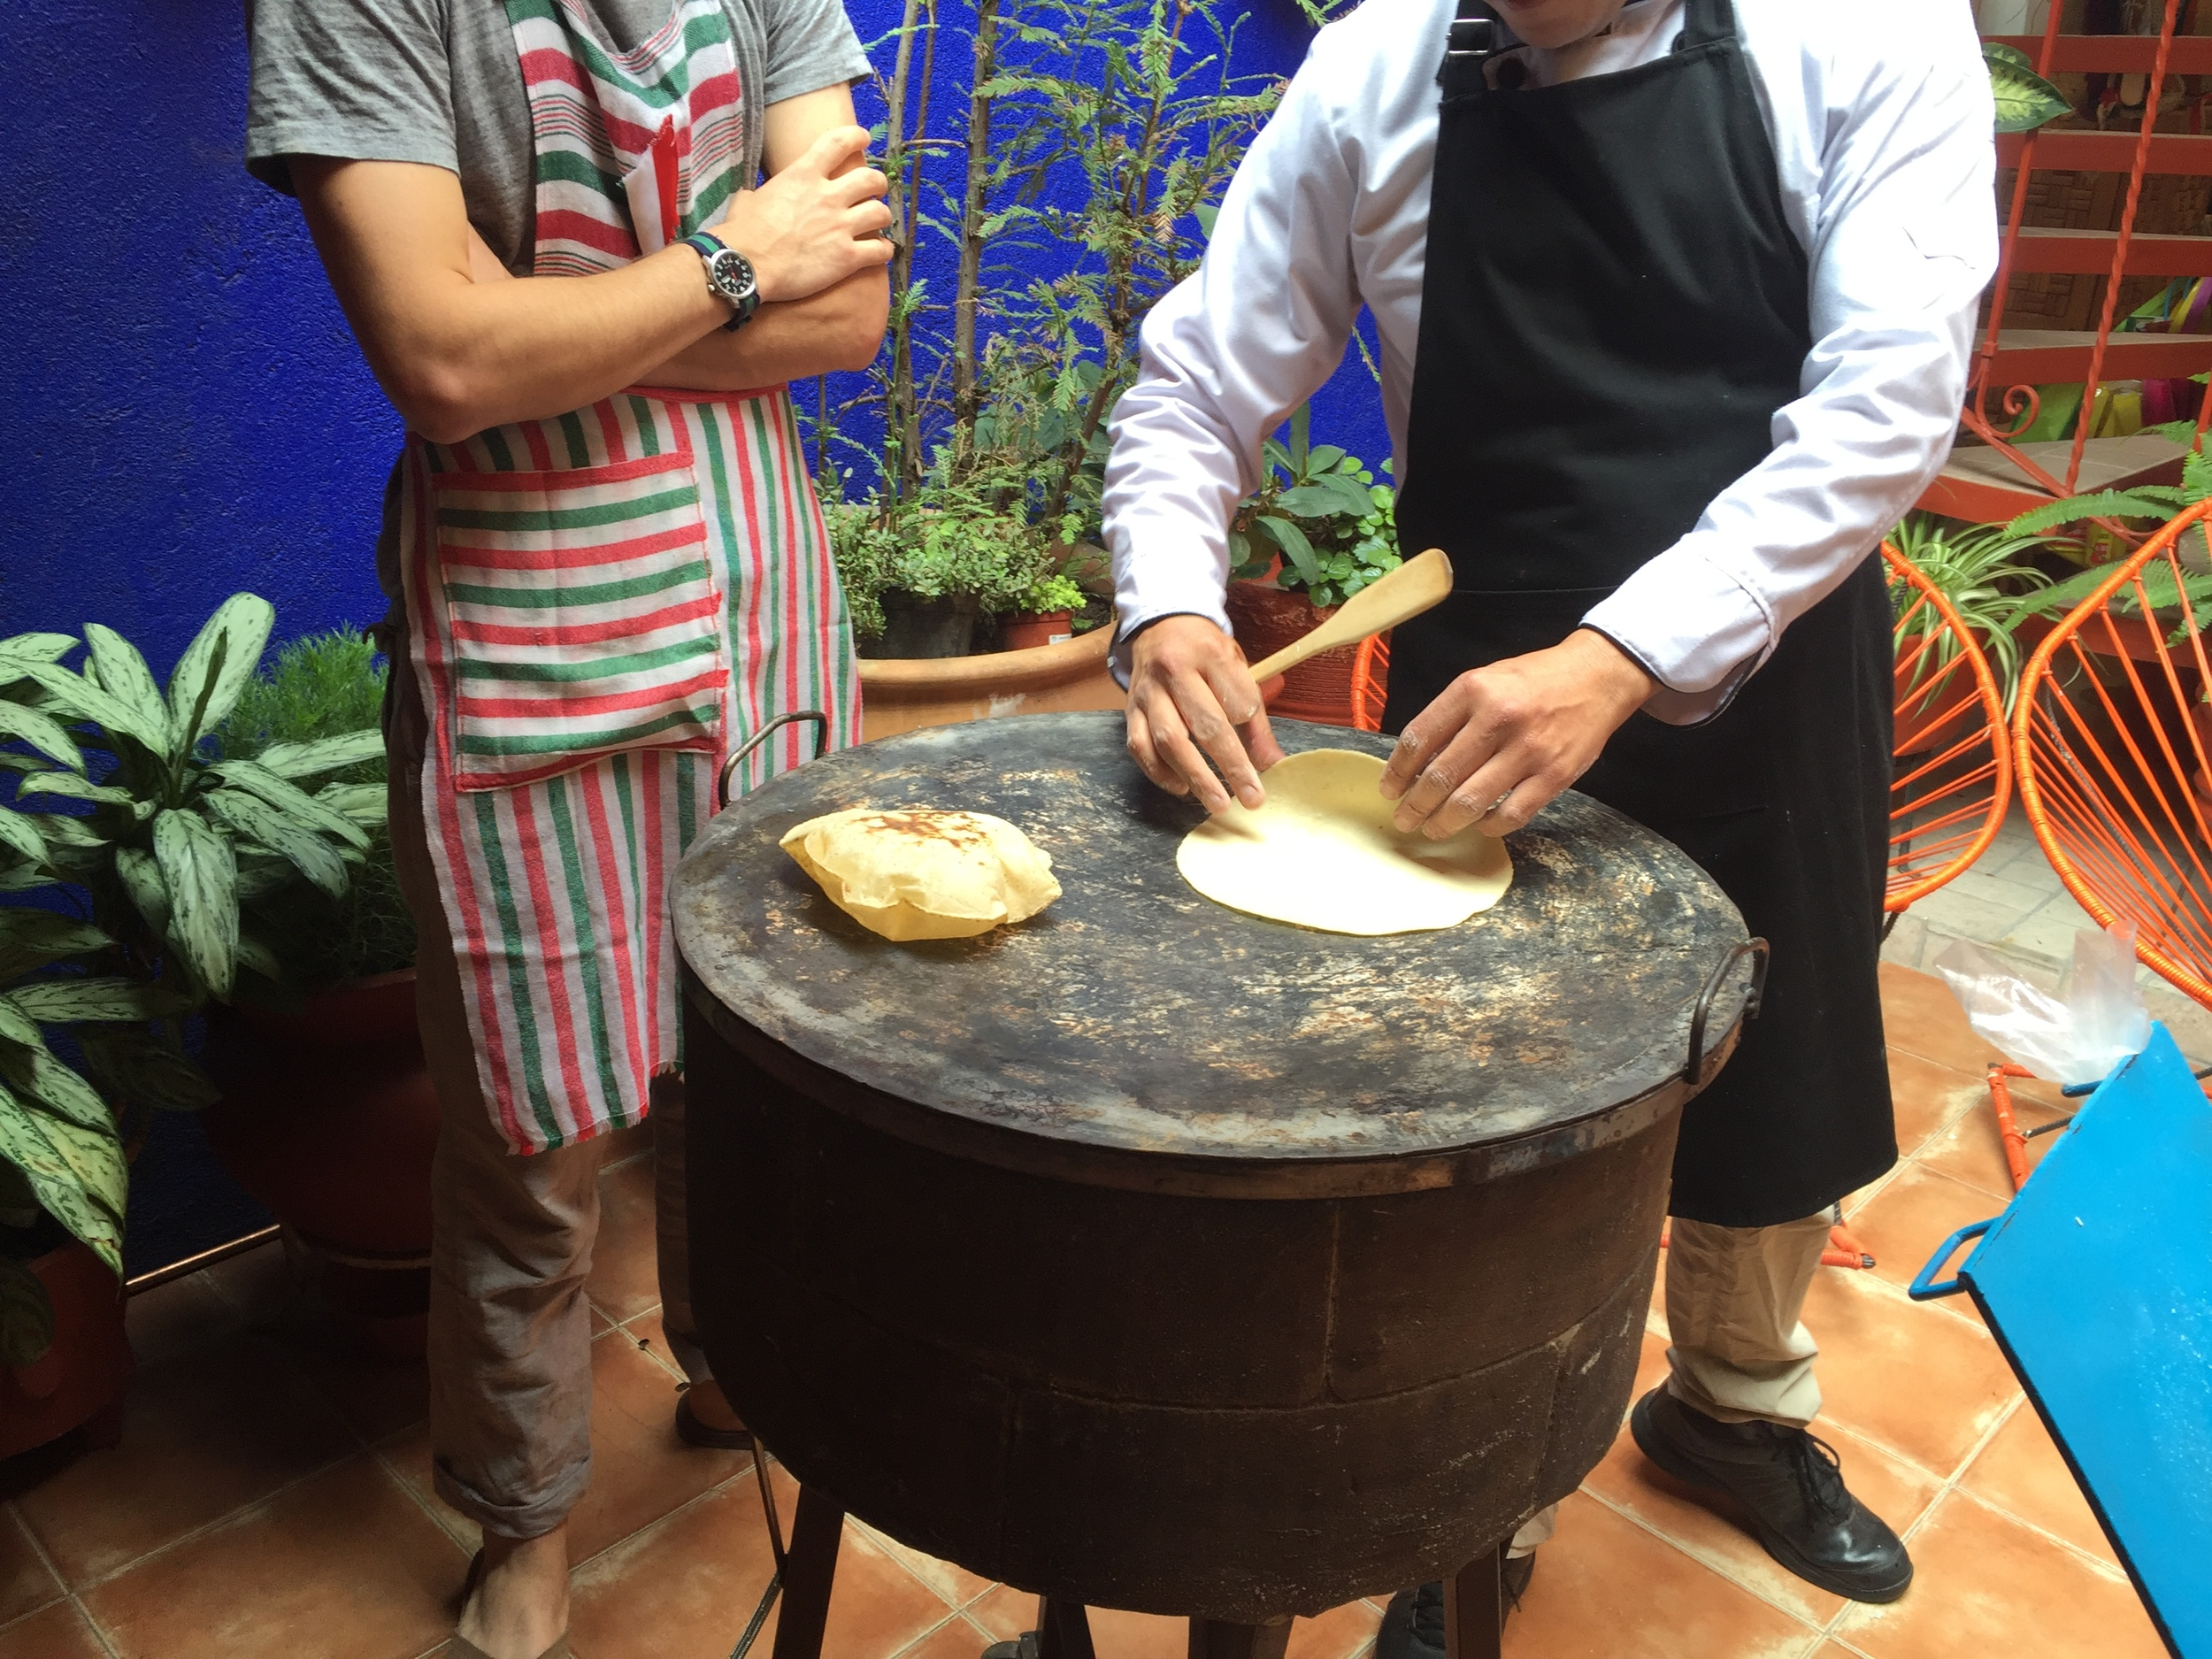 Chef Gerardo shows a fellow student from NYC how to gently slide the tortilla onto the tamal.